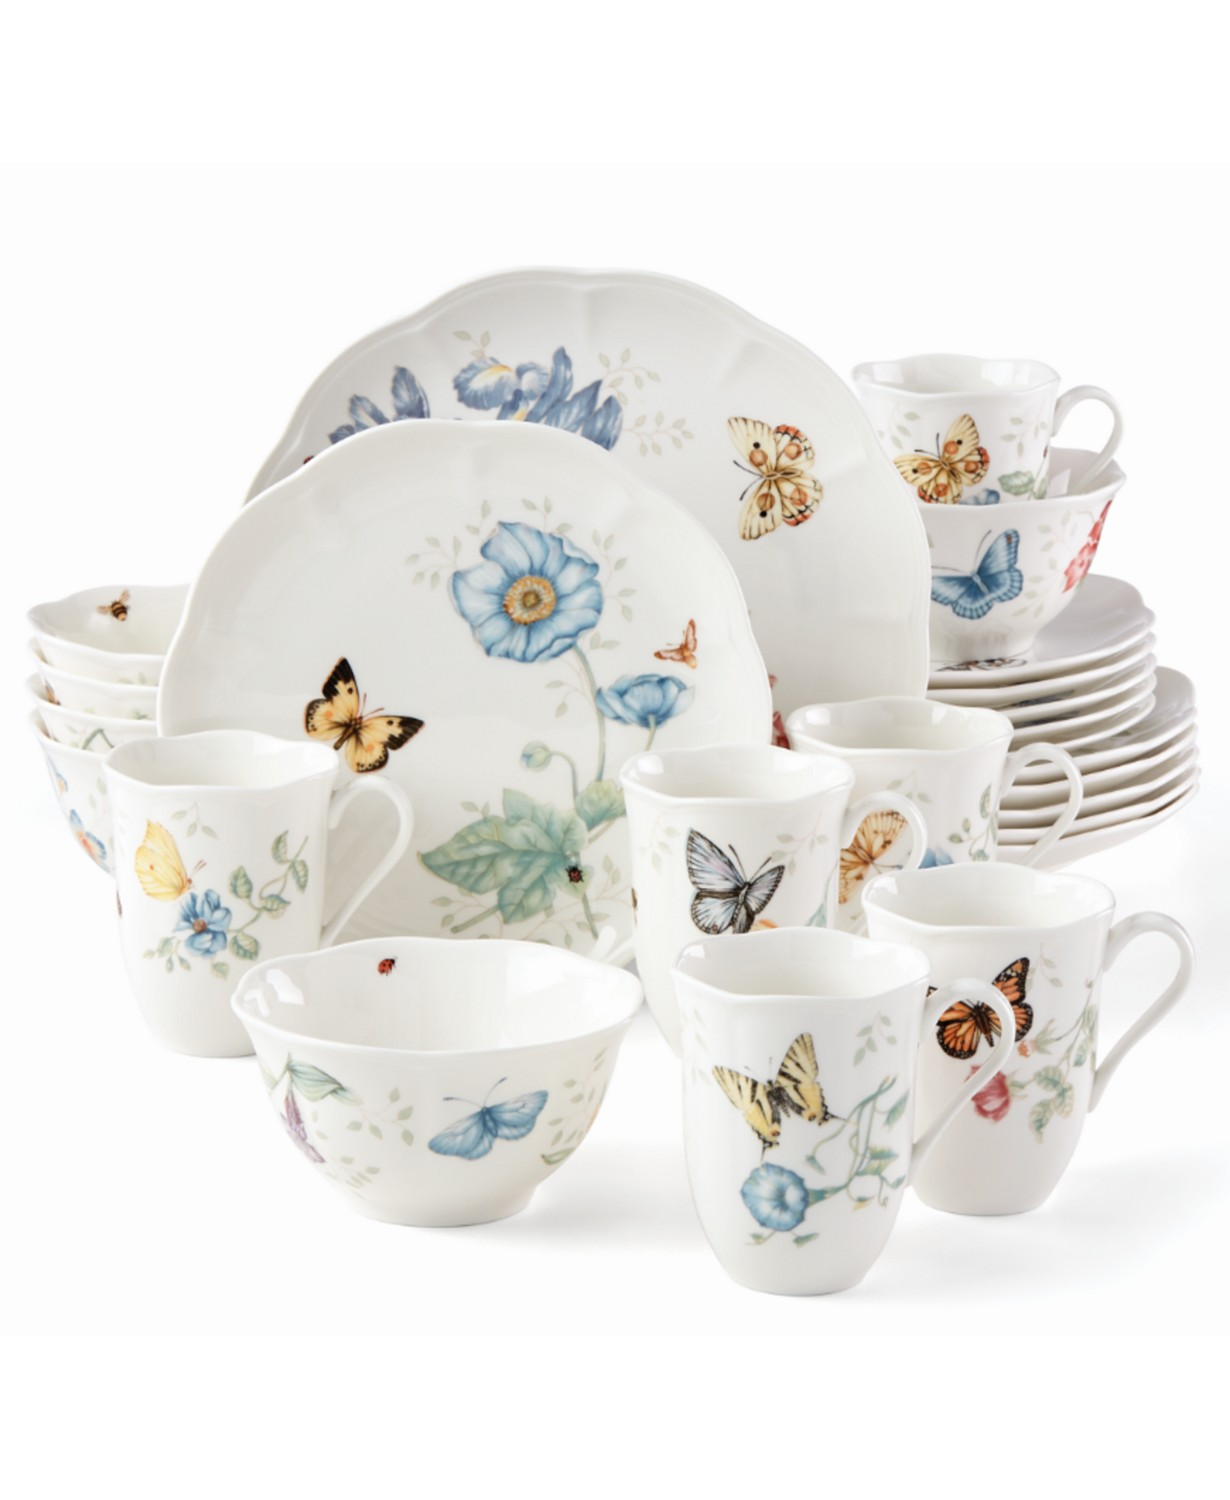 MACYS PRESIDENT DAY SPECIAL! LENOX, VILLEROY & BOCH & MORE DINNERWARE SETS UP TO 70% OFF!